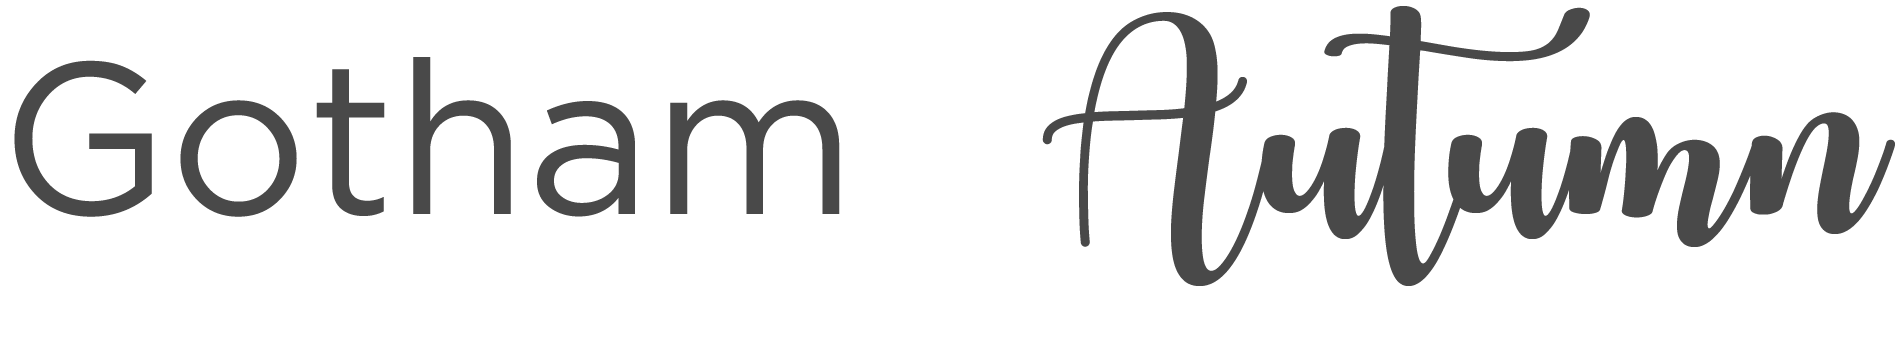 An example of a text font - Gotham - versus a display font - Autumn. While display fonts can add visual impact, depending on their design they can impact legibility.